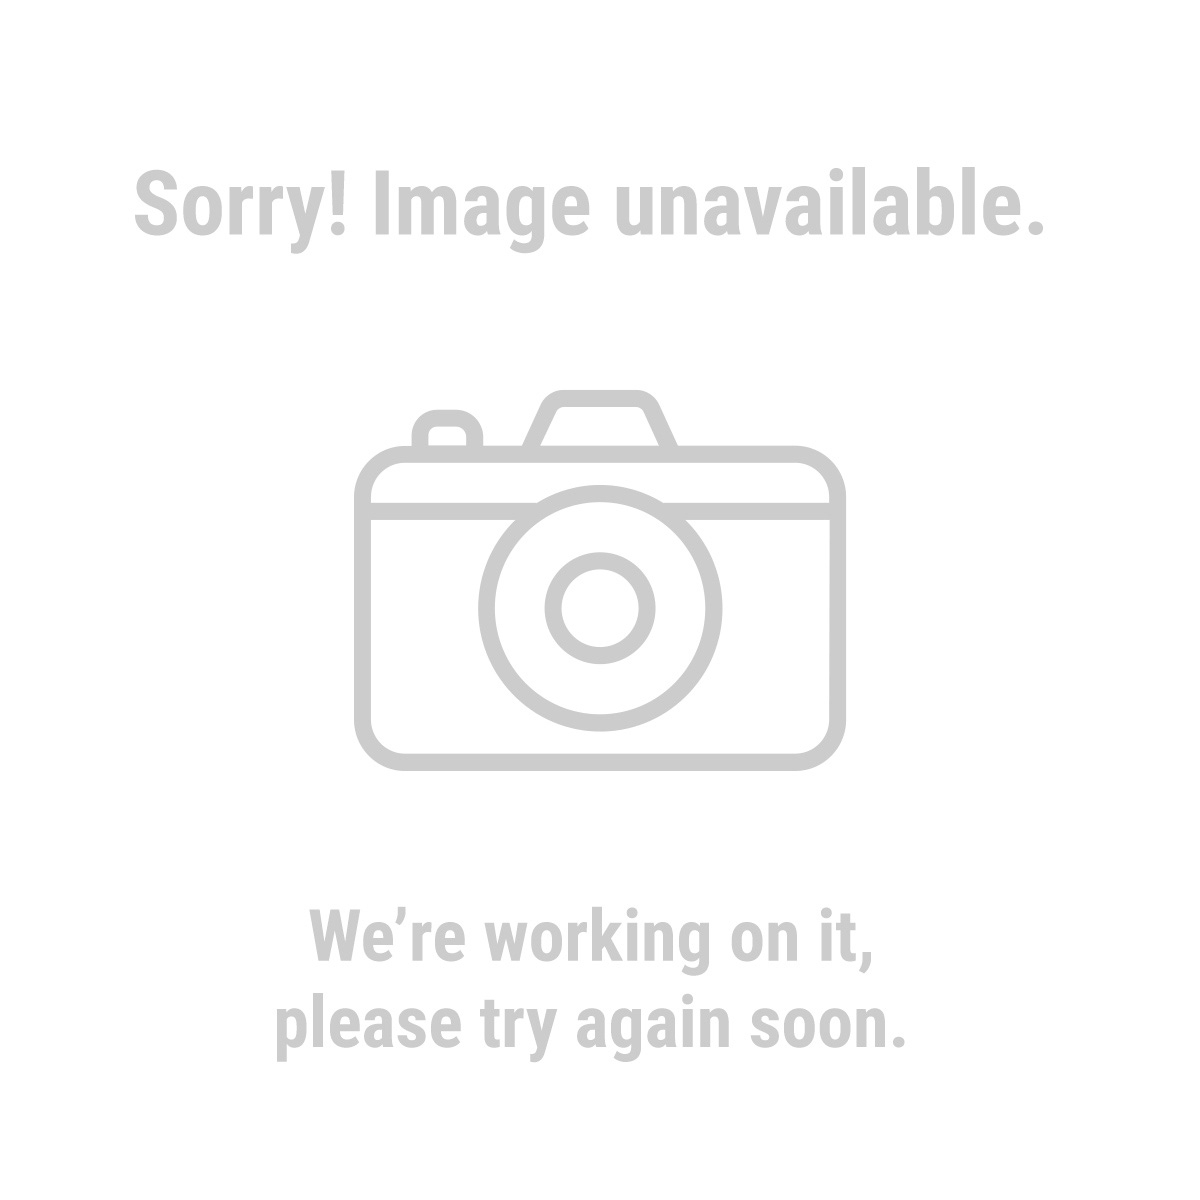 Help 12 Quot Disc Sander Trouble Woodworking Talk